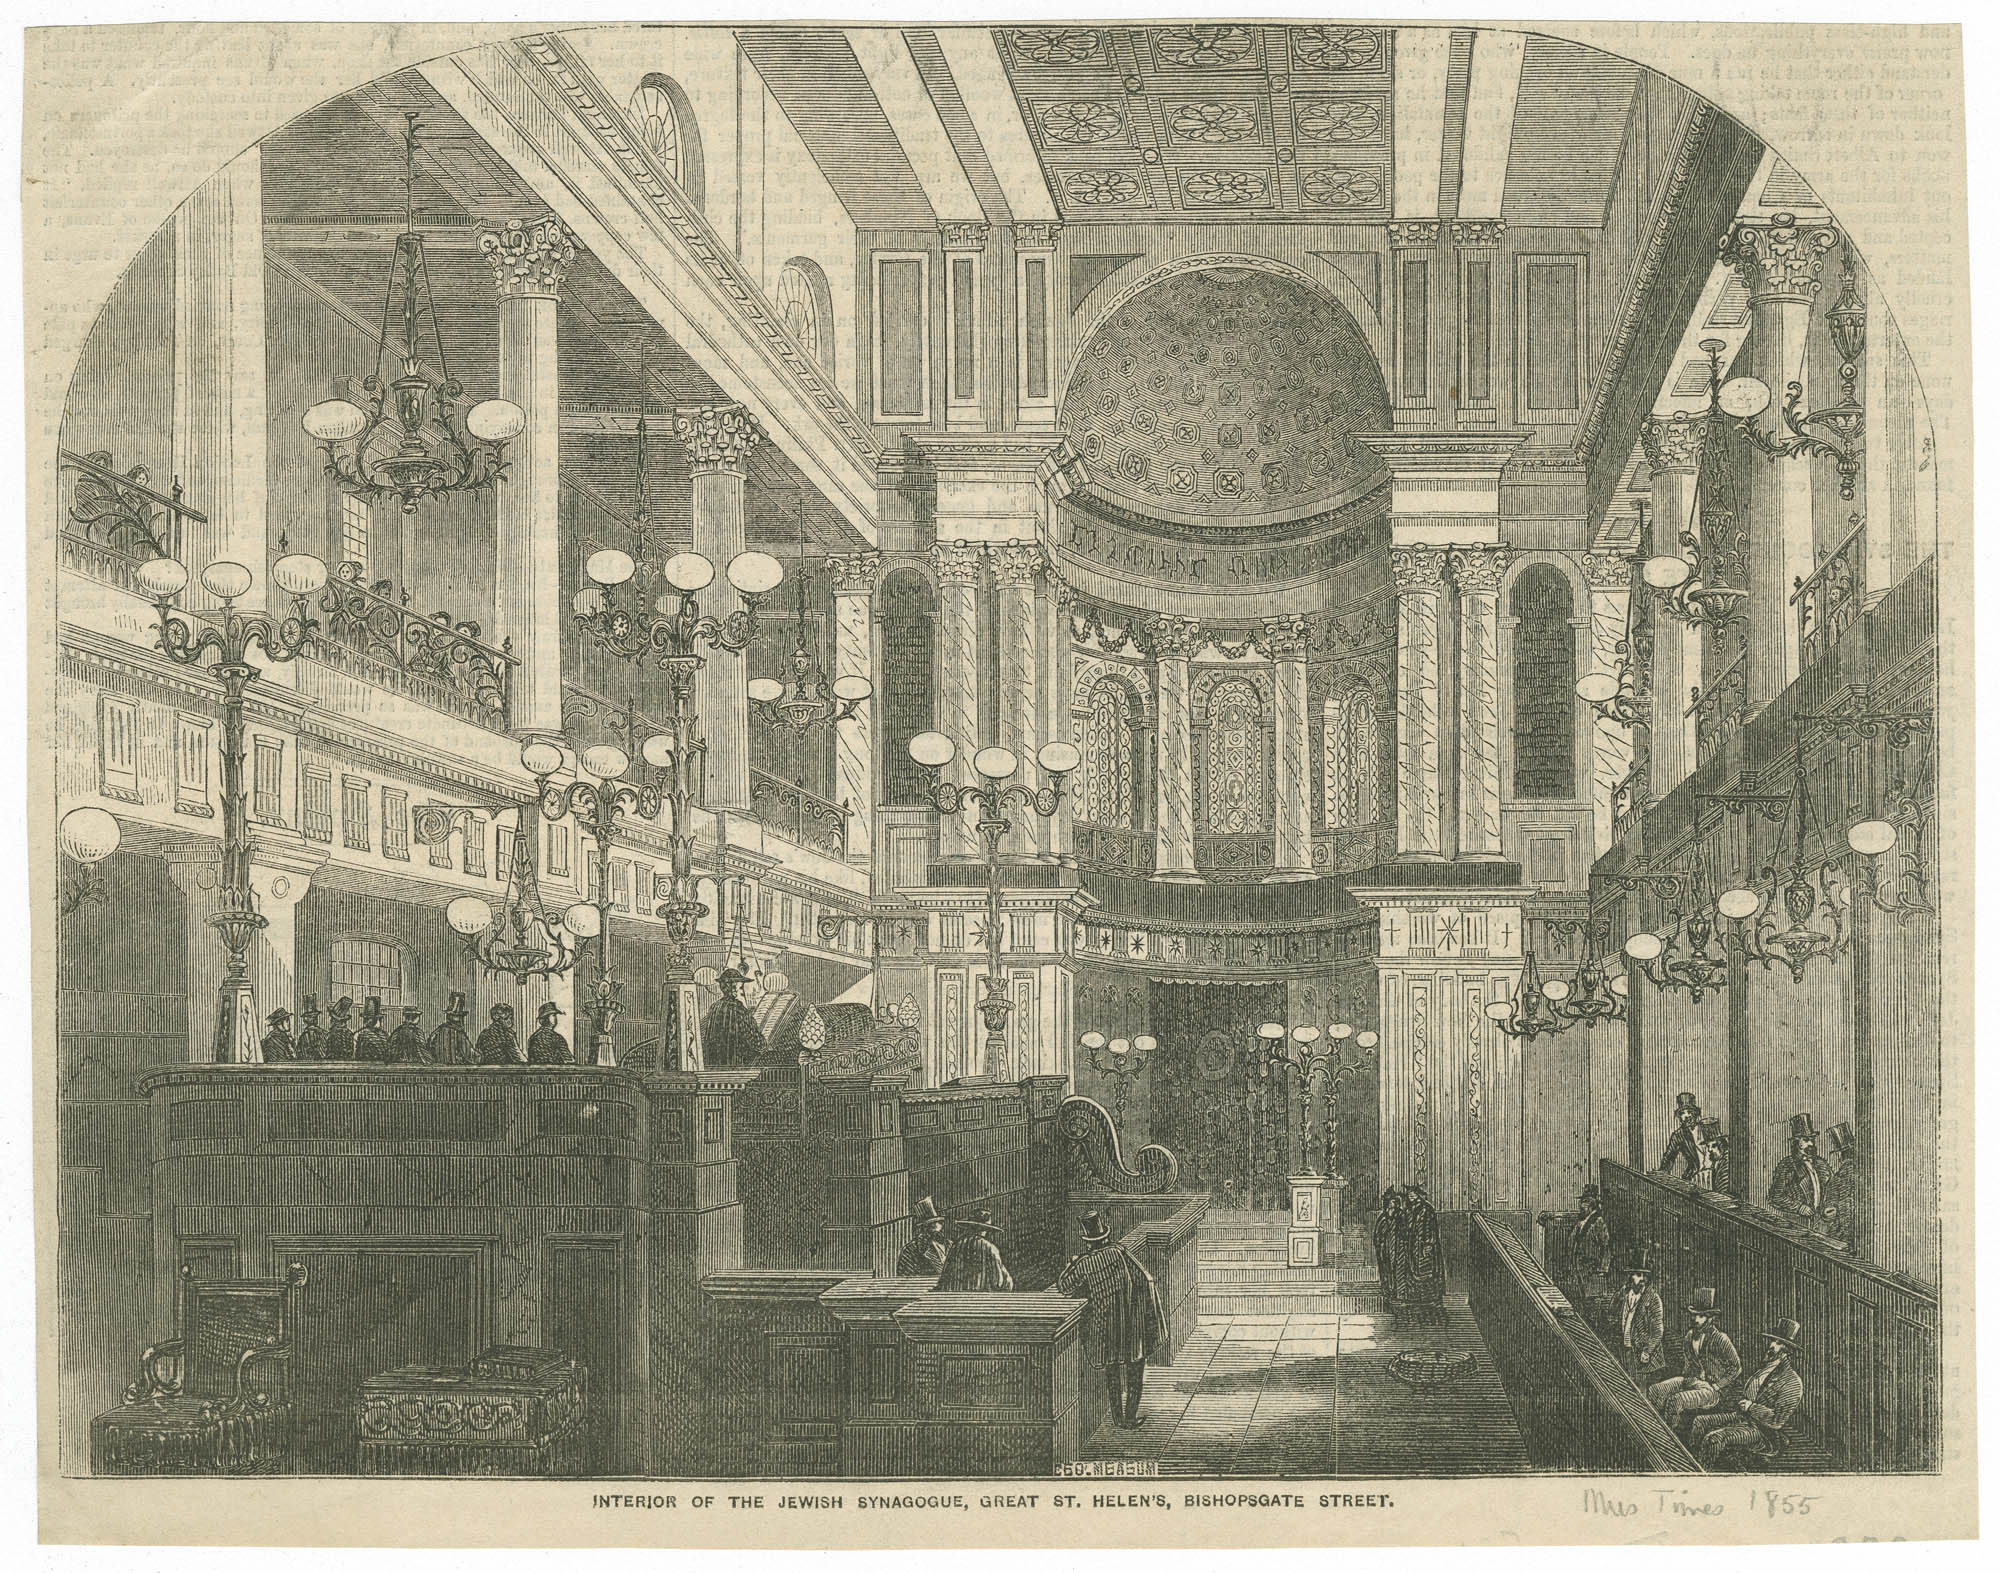 Interior of the Jewish Synagogue, Great St. Helen's, Bishopsgate Street